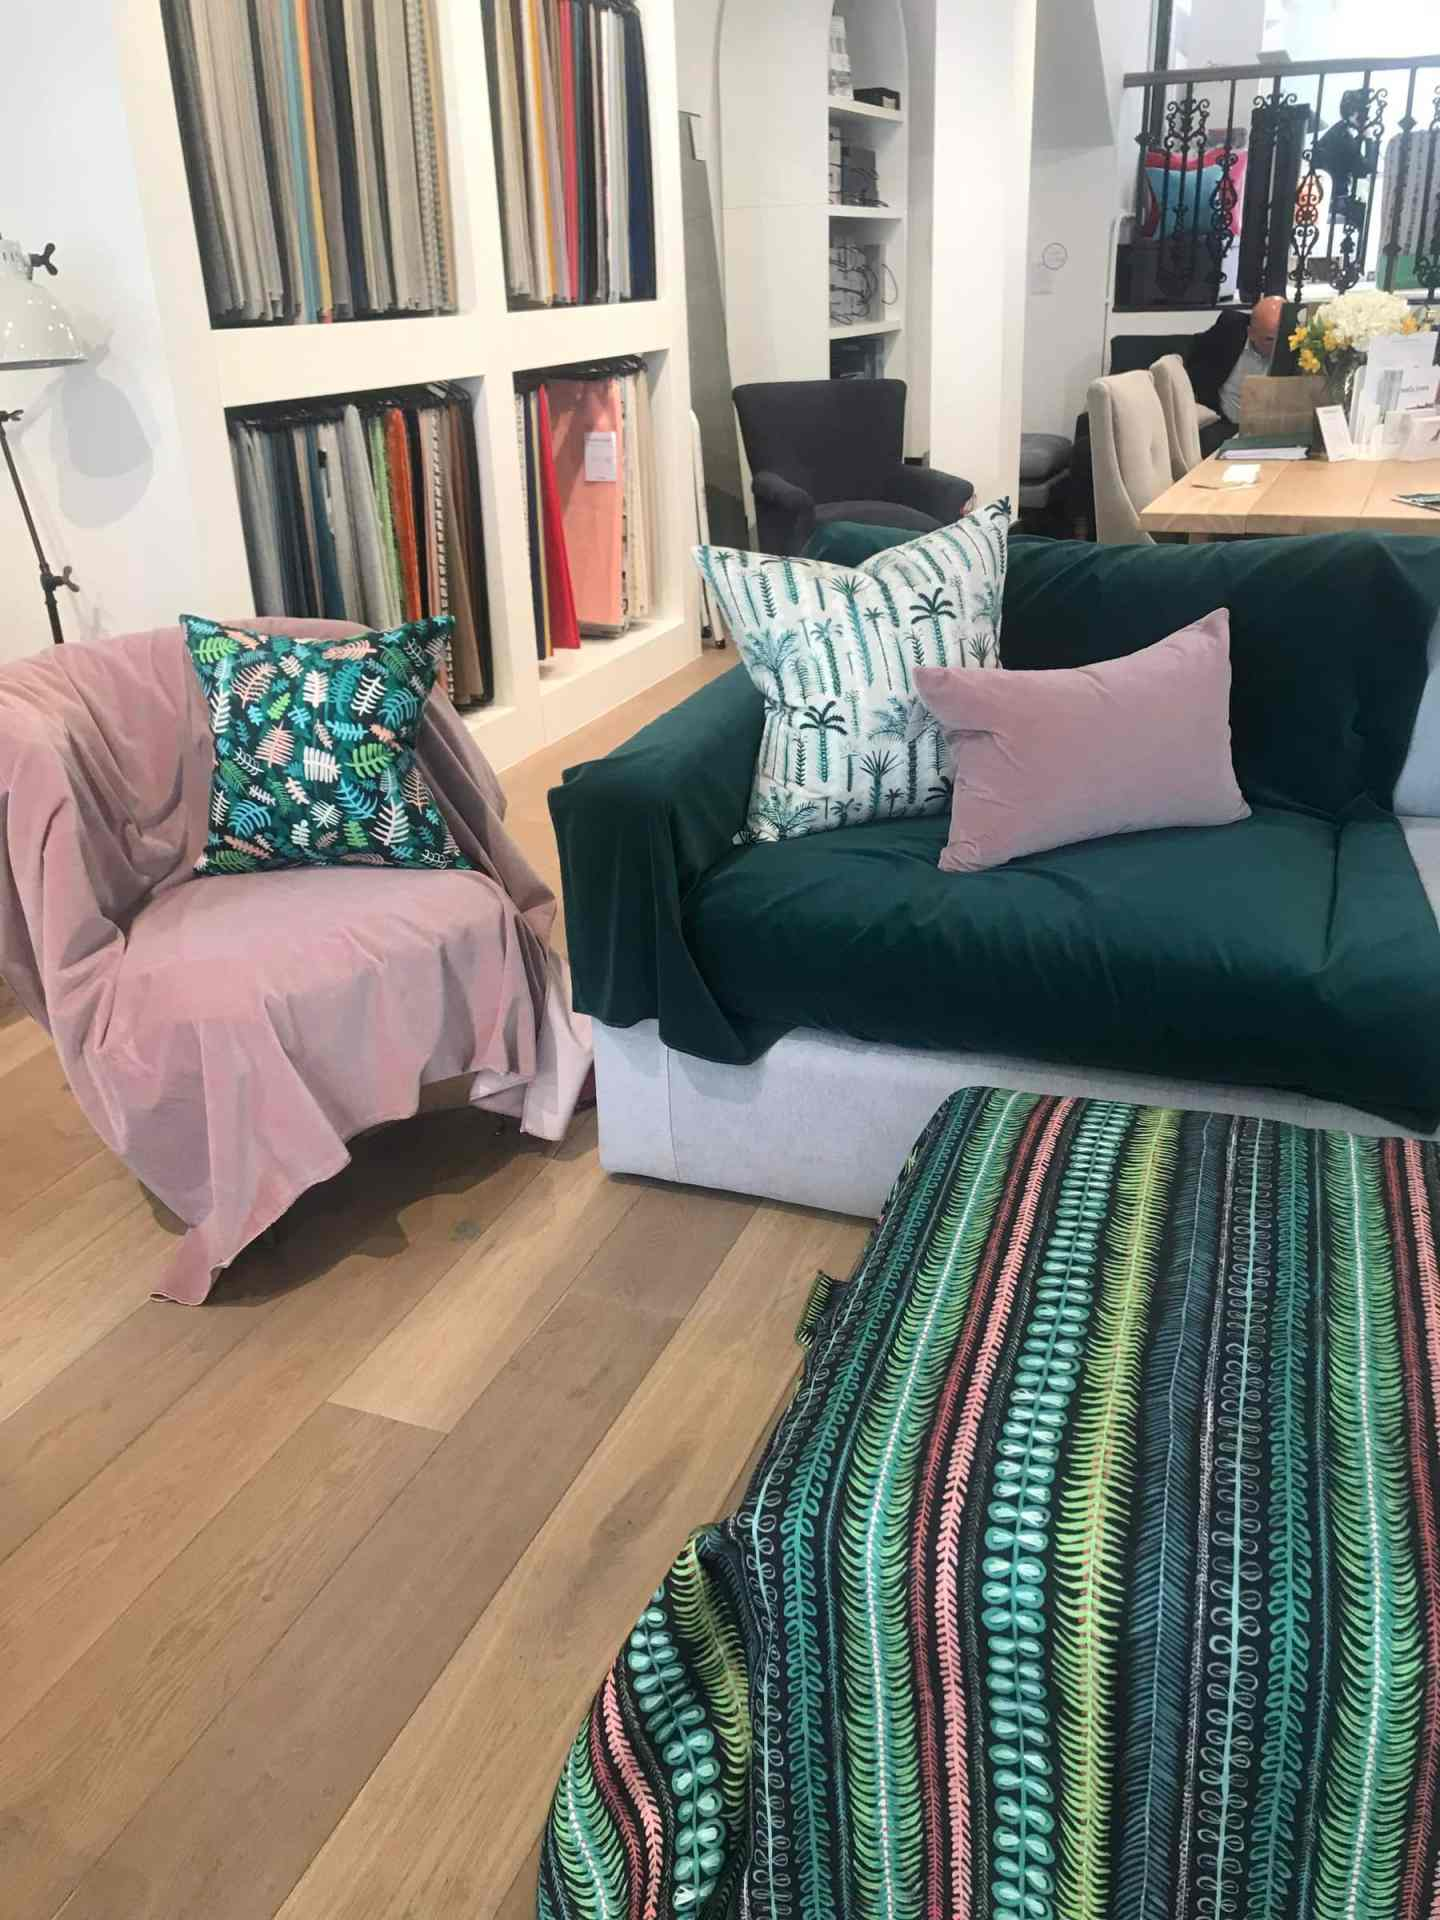 Matching it all up together with their new Lucy Tiffney fabric - perfect